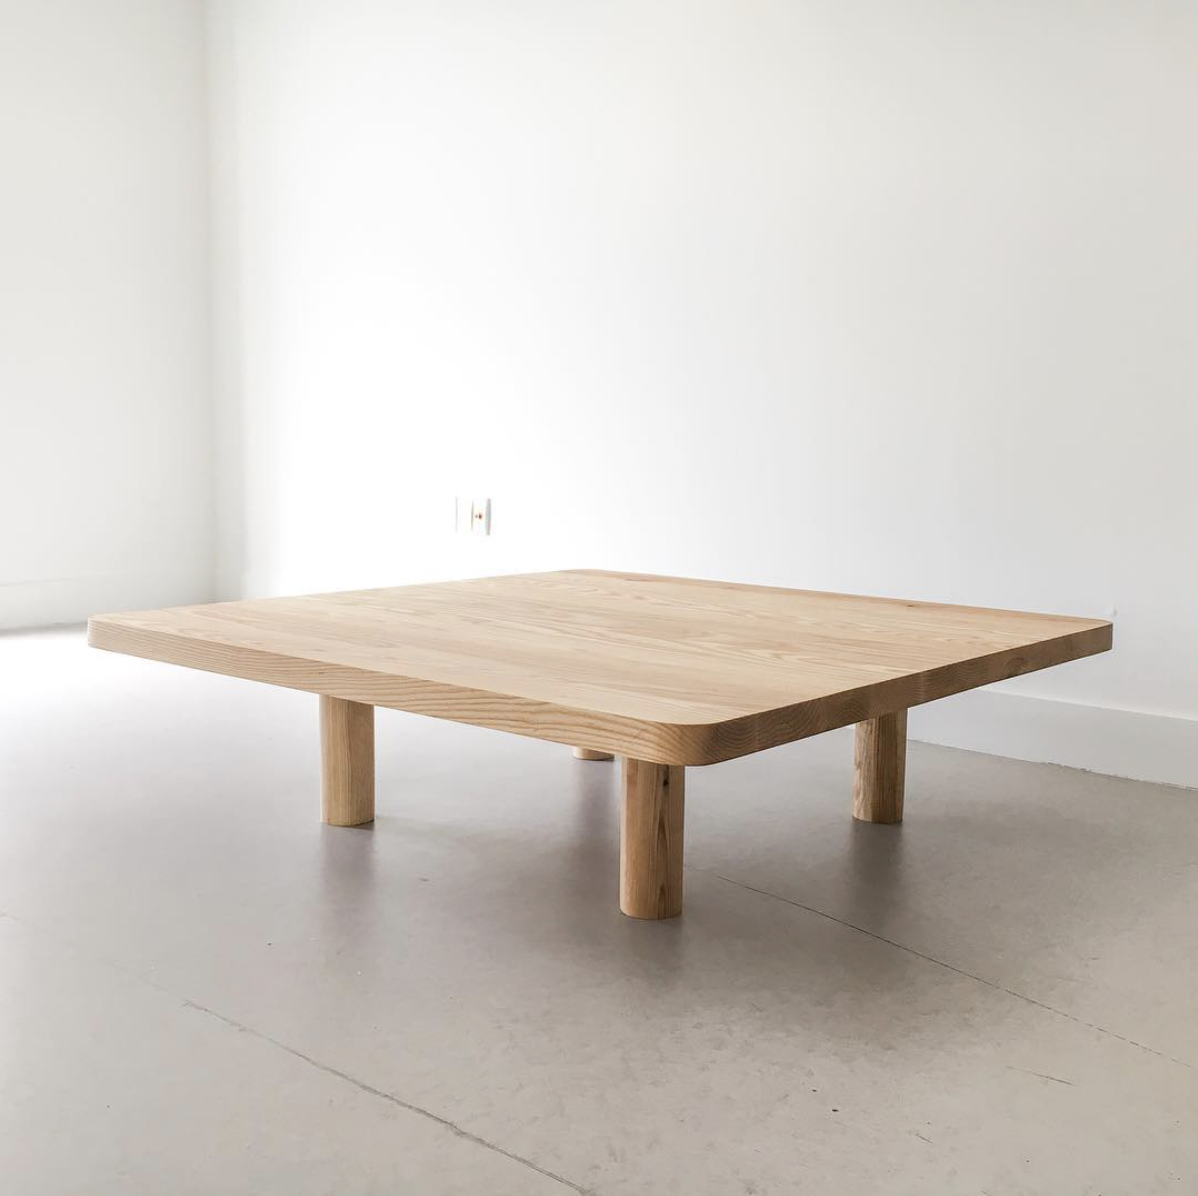 CUSTOM TABLE (IN COLLABORATION WITH WORKROOM)  CUSTOMIZABLE AND AVAILABLE IN DIFFERENT WOOD FINISHES